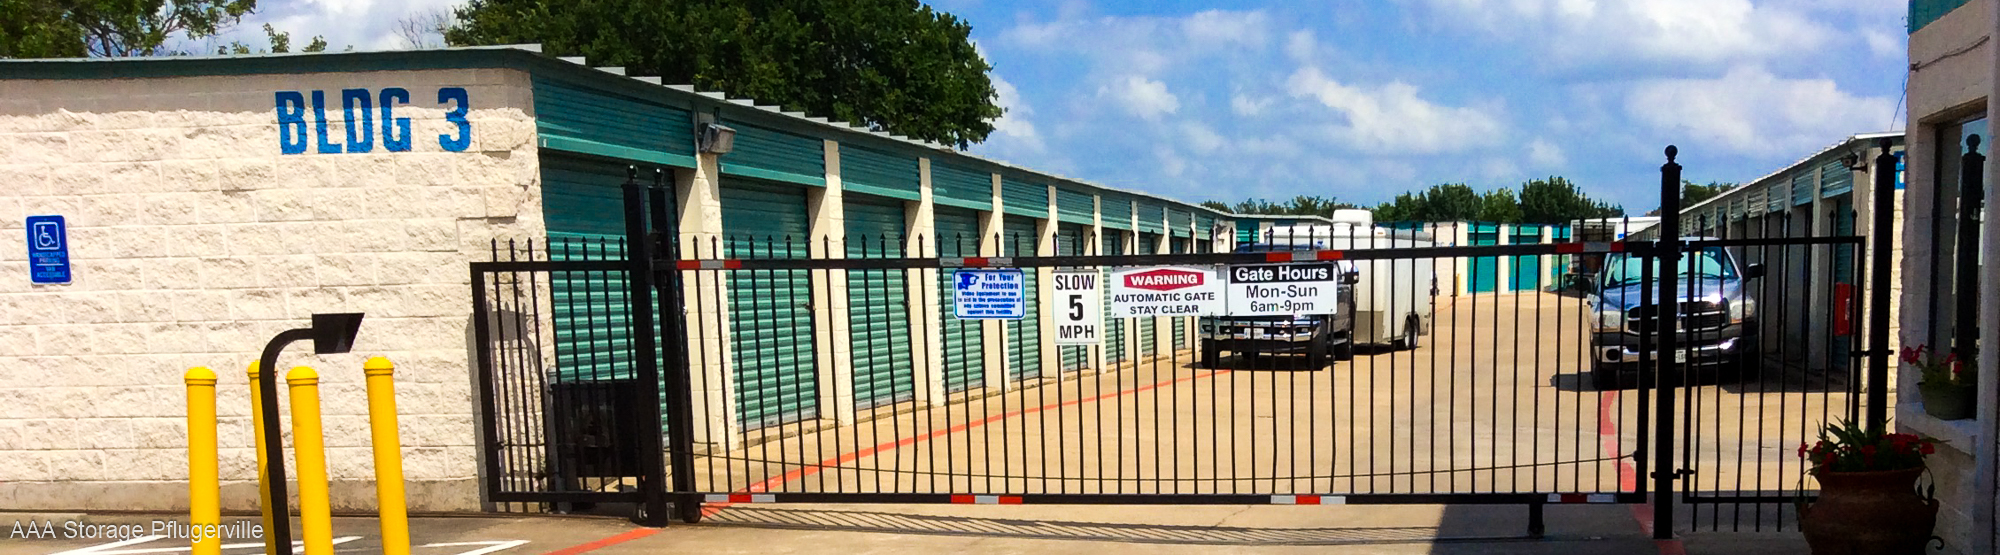 Affordable Self Storage In Pflugerville Texas 78660 Aaa Storage